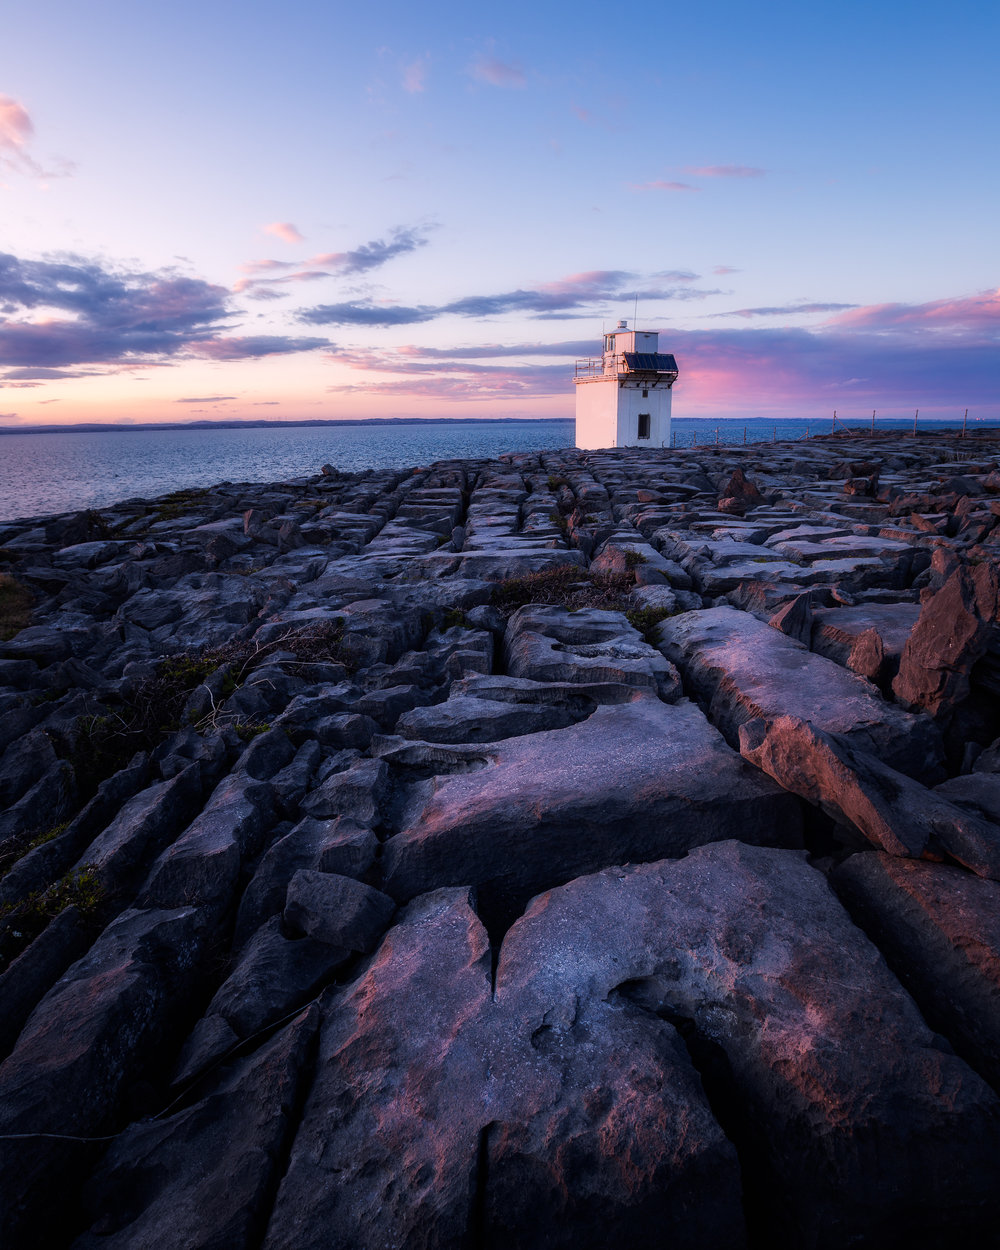 The Burren by Mike O'Leary - Greengraf Photography--2.jpg